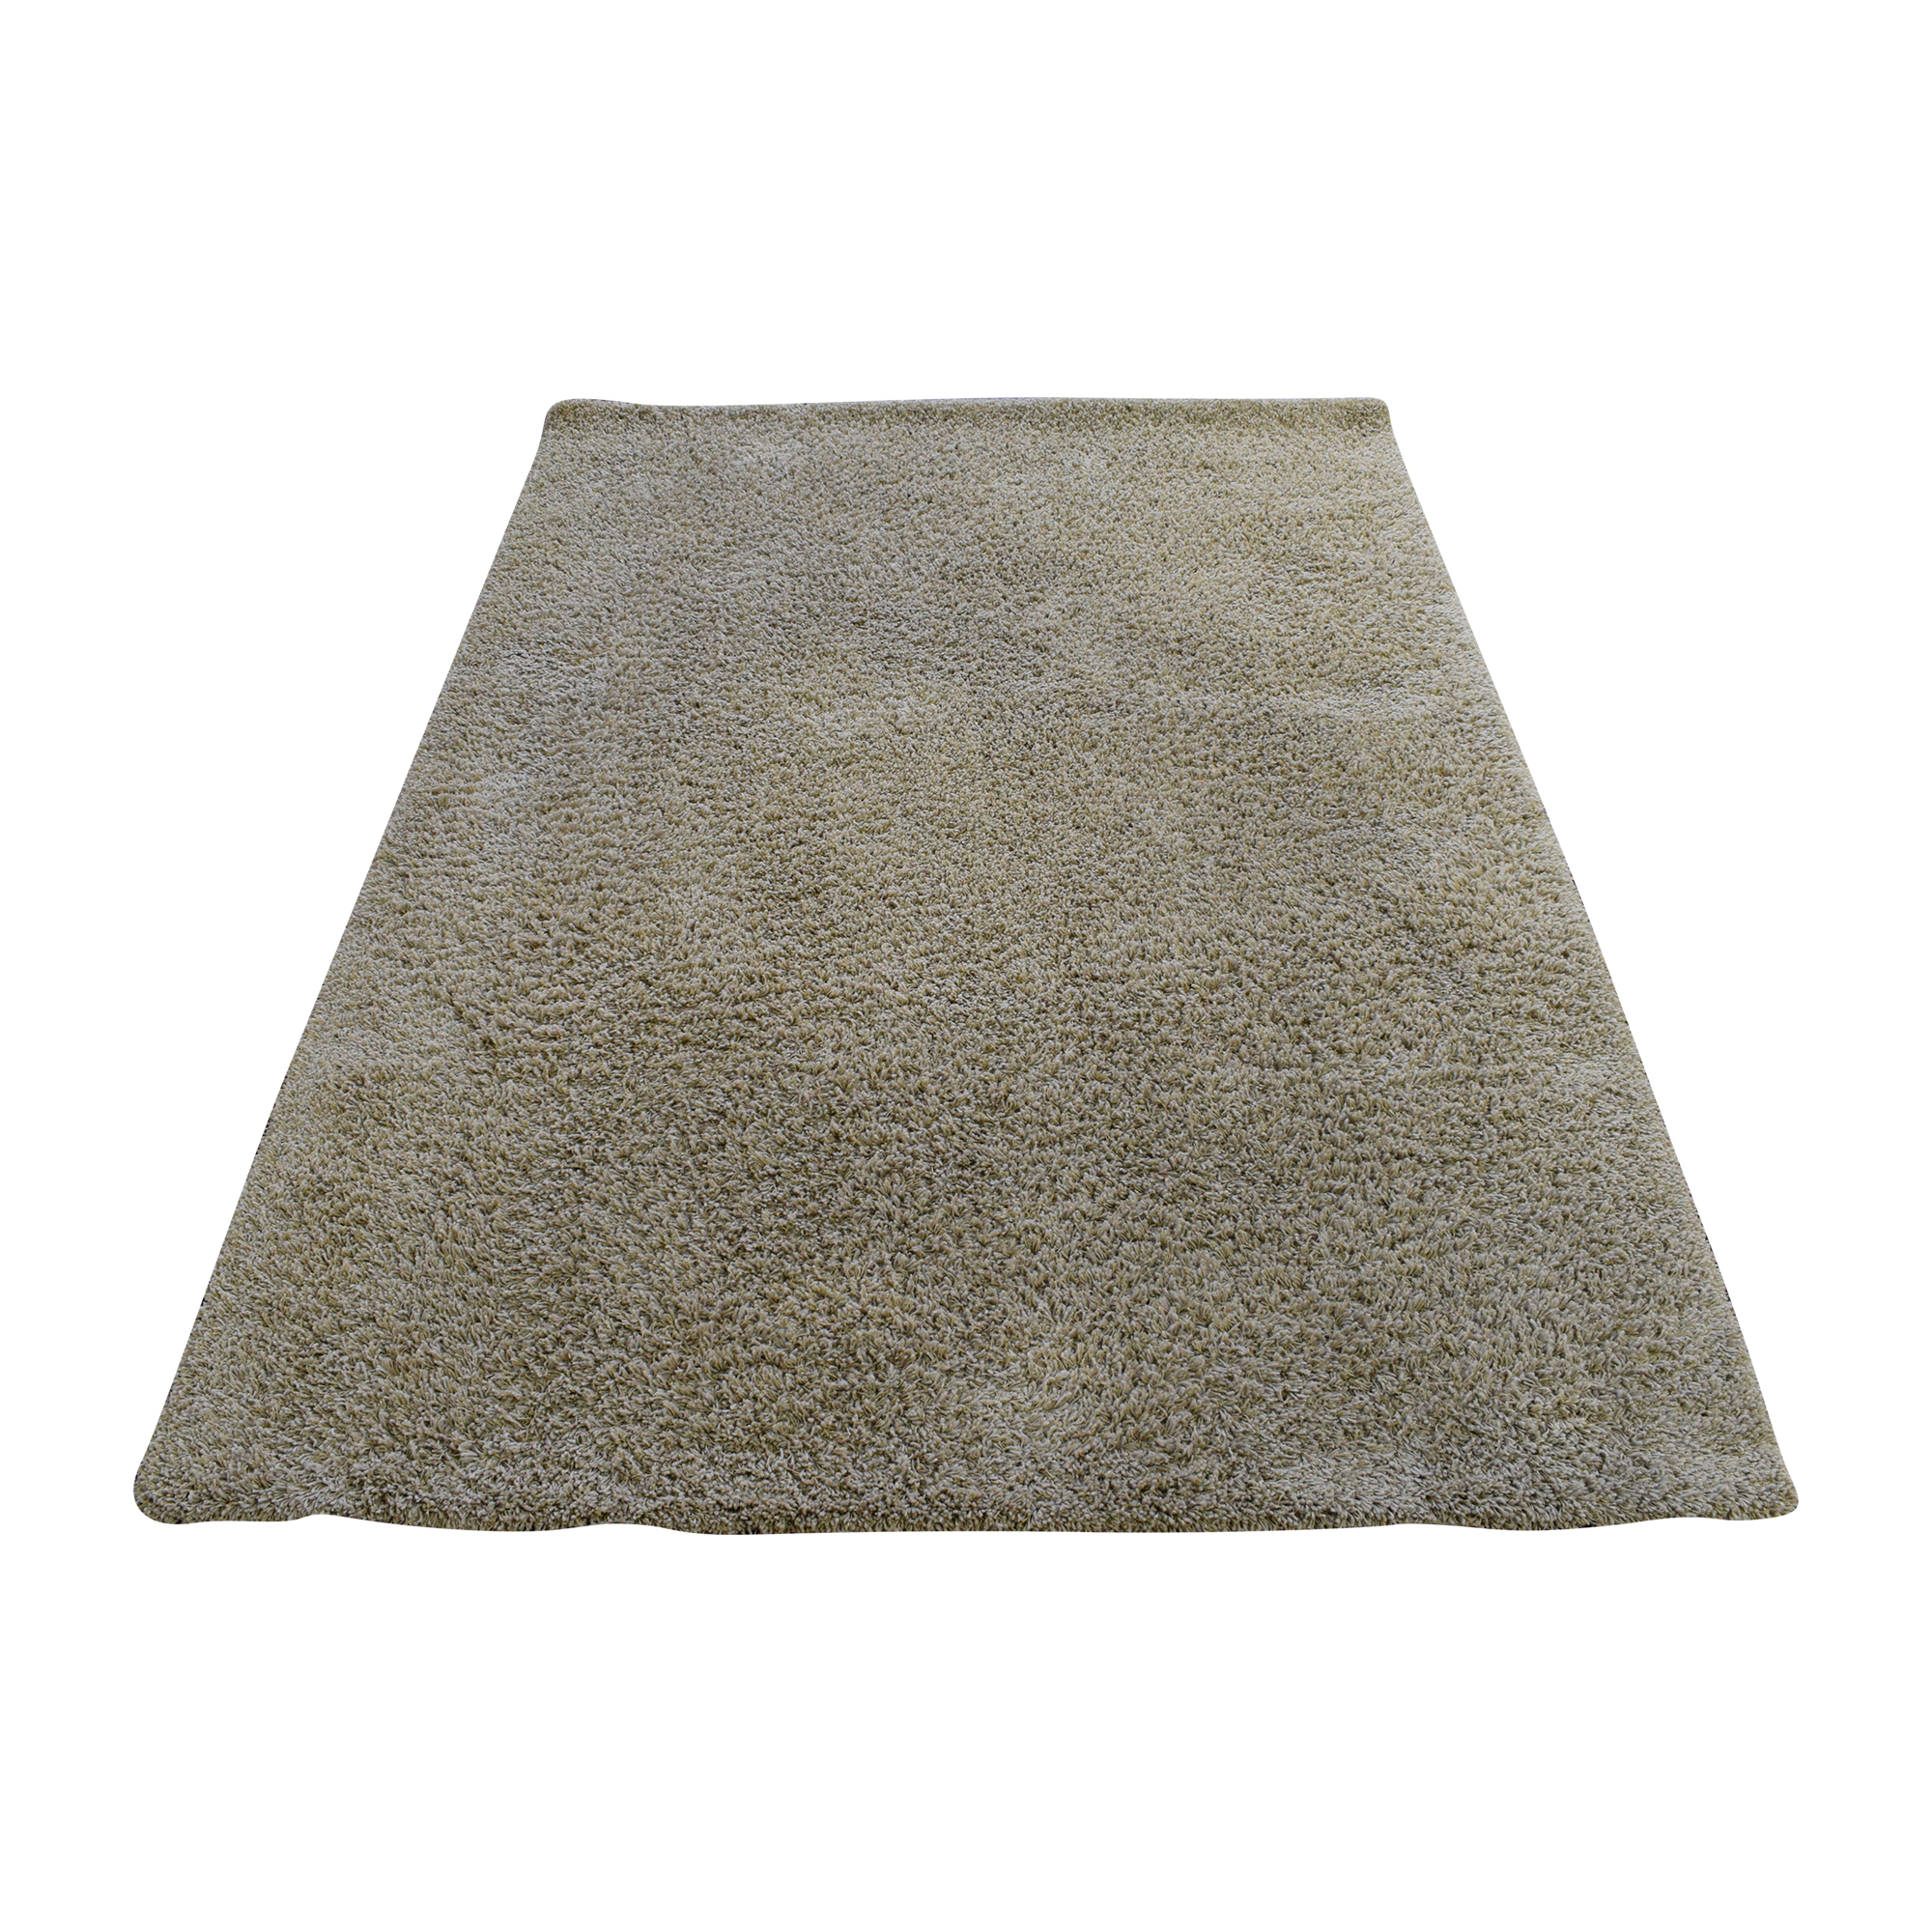 Ethan Allen Ethan Allen Satori Area Rug on sale